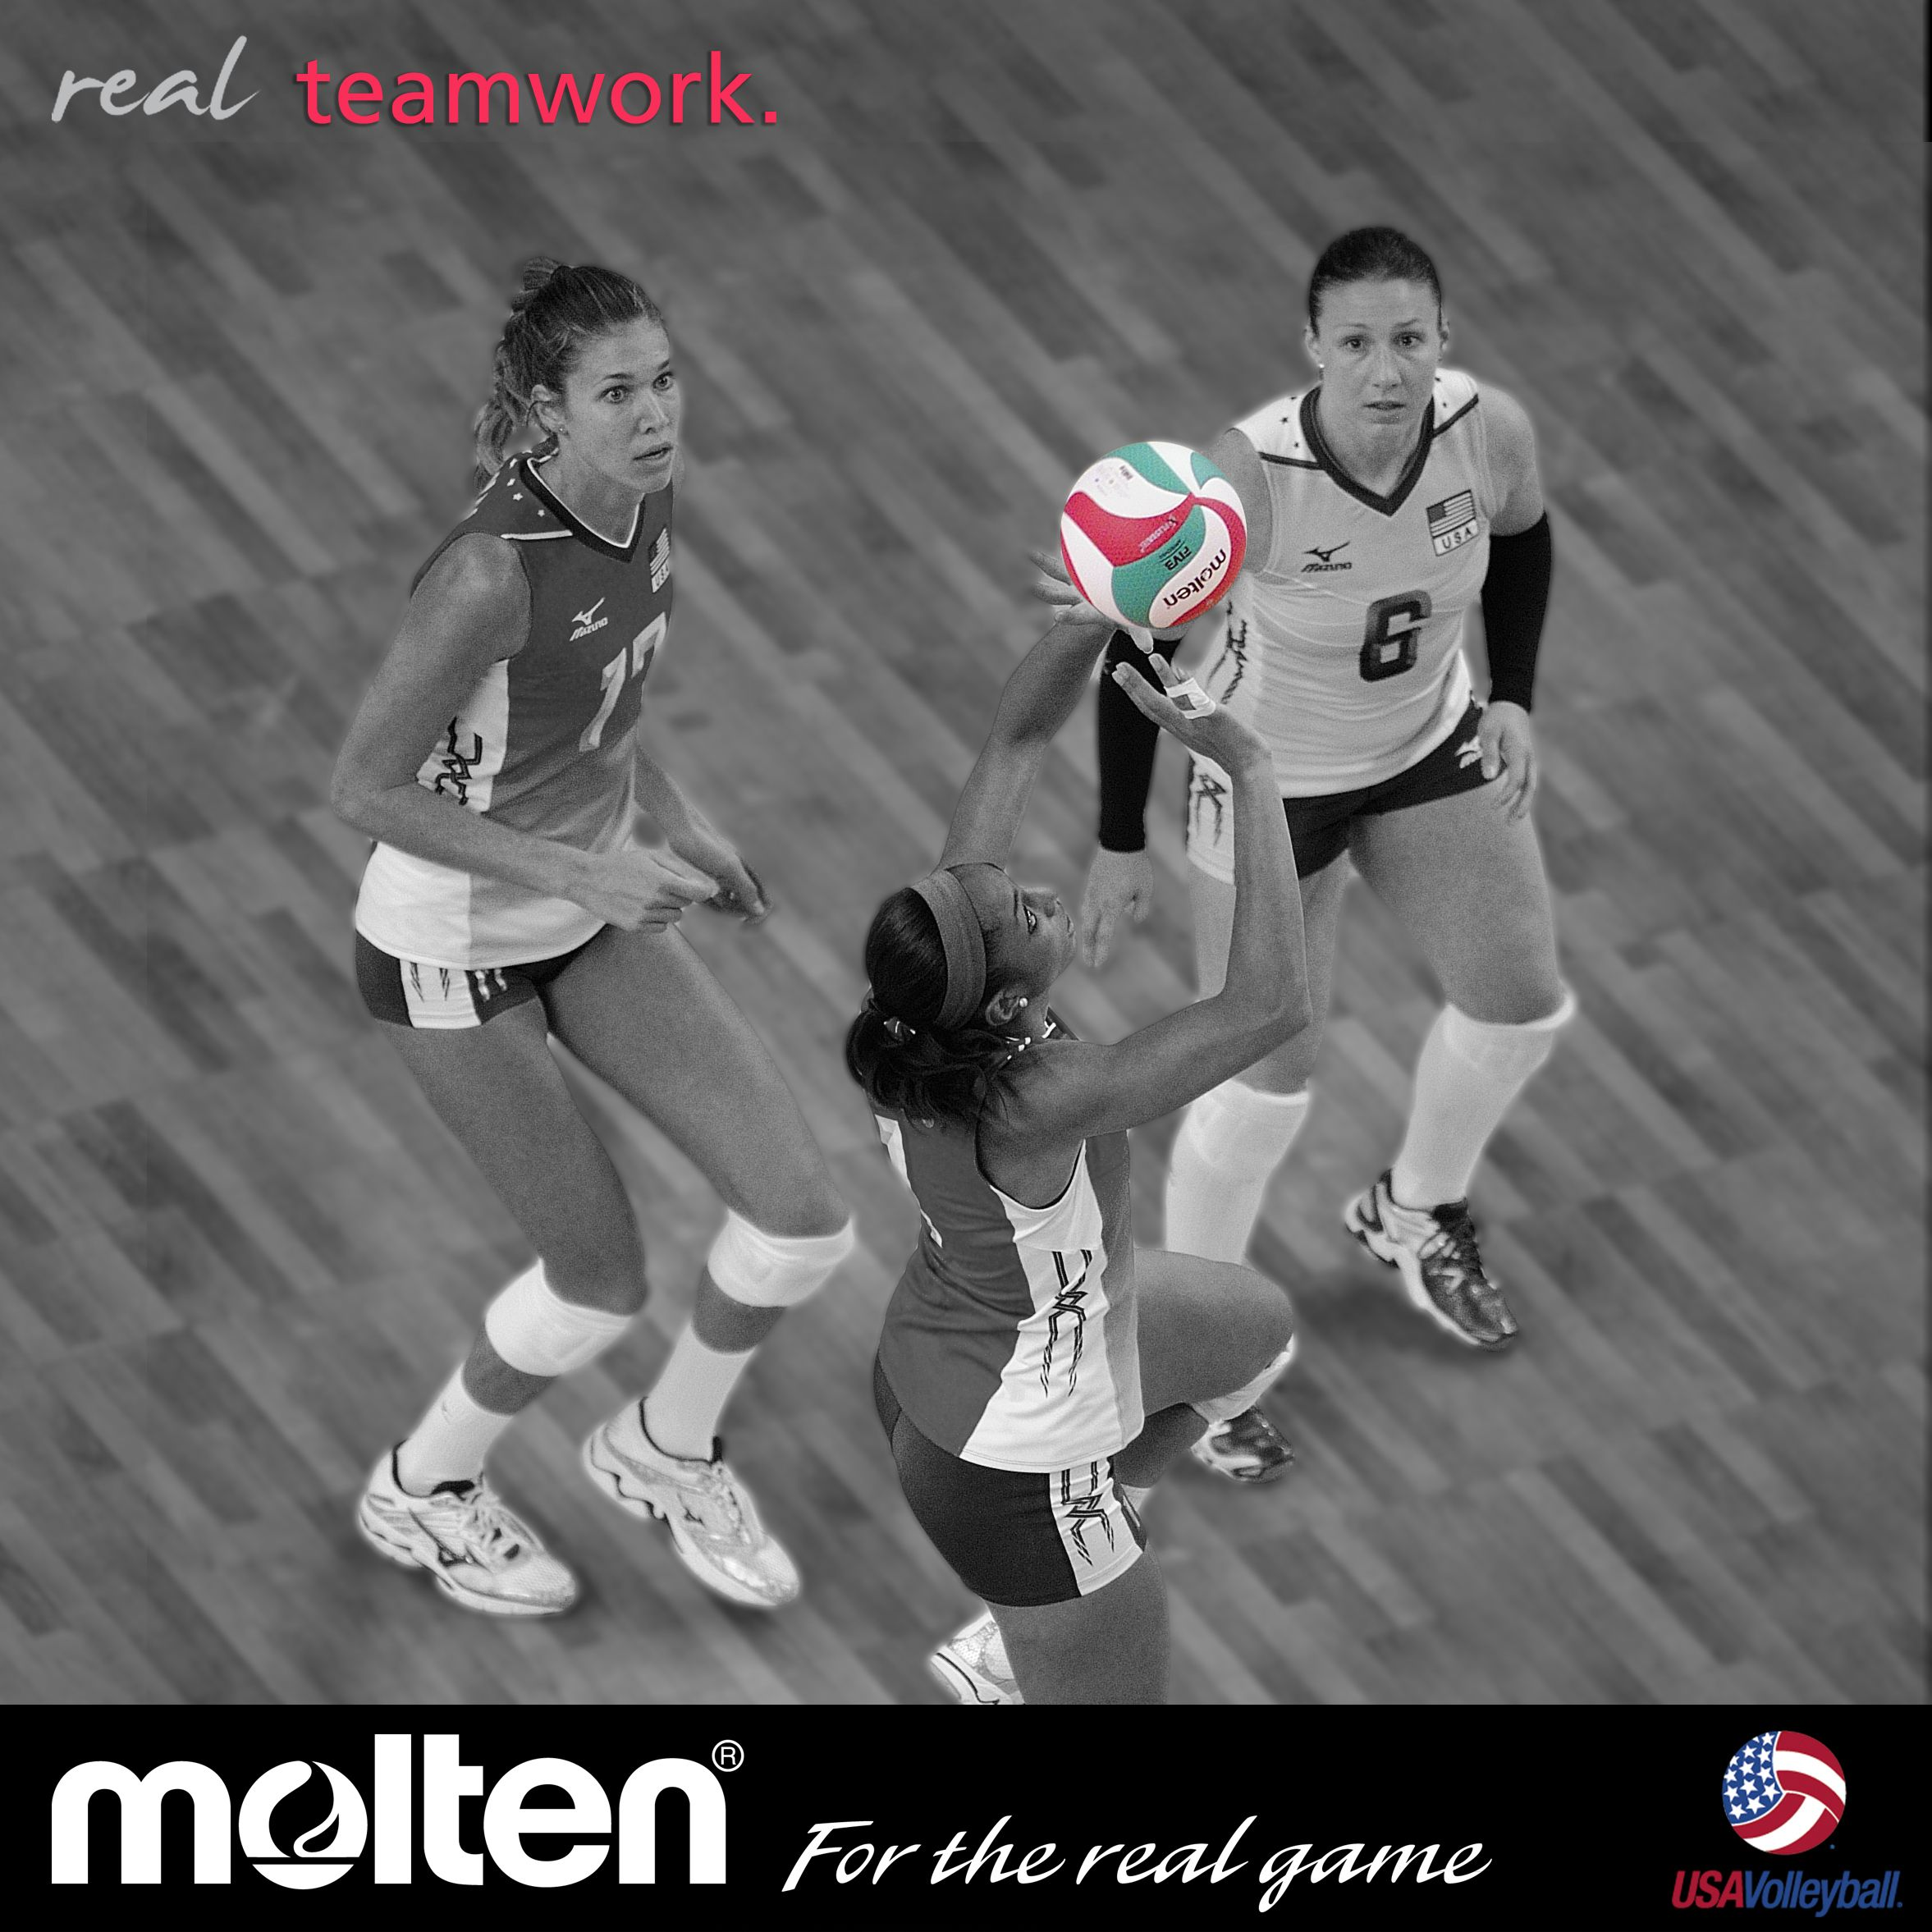 Unity Is Strength When There Is Teamwork And Collaboration Wonderful Things Can Be Ach Volleyball Motivation Teamwork And Collaboration Volleyball Players